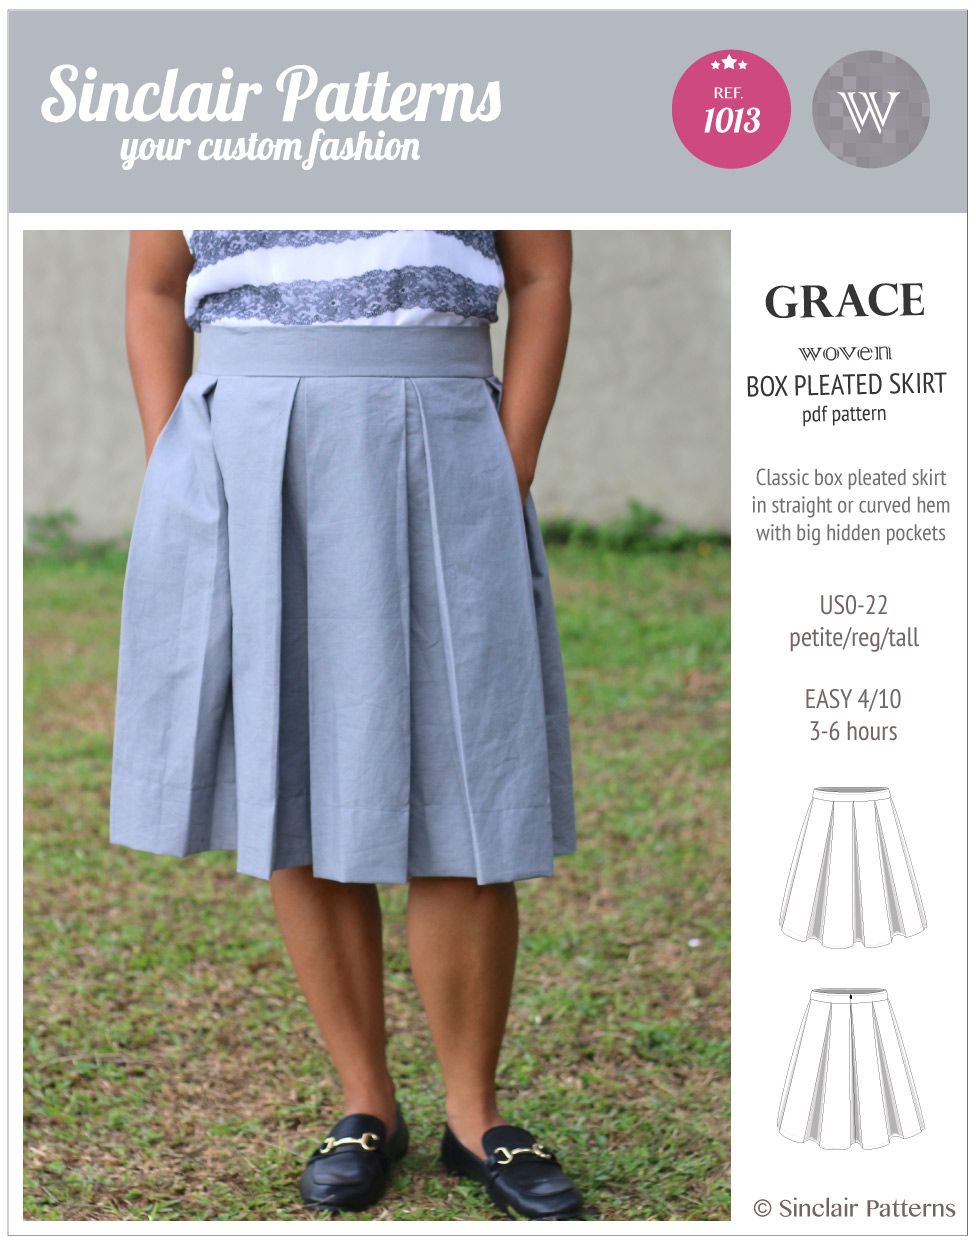 Pdf Sewing Patterns Sinclair Patterns Grace Box Pleated Lined Woven Skirt With Pockets Pdf Skirts With Pockets Skirts Pleated